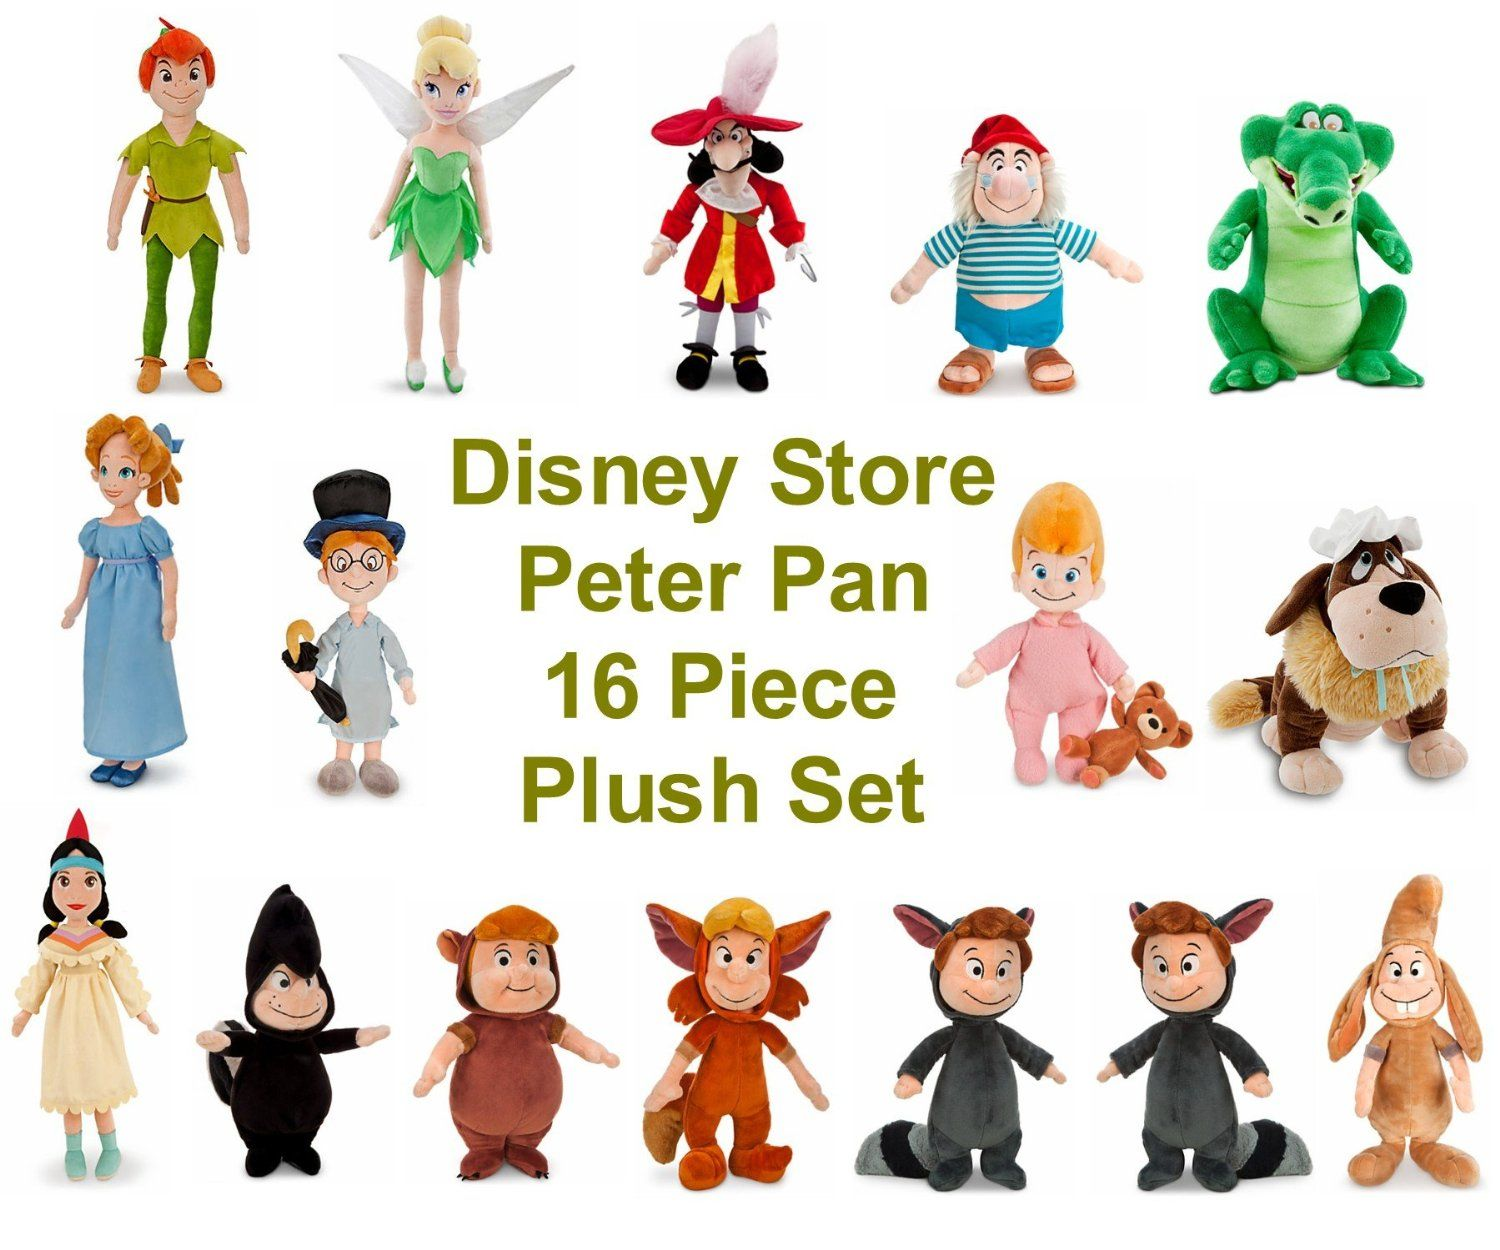 Peter Pan Toys : Amazon disney store peter pan piece plush doll